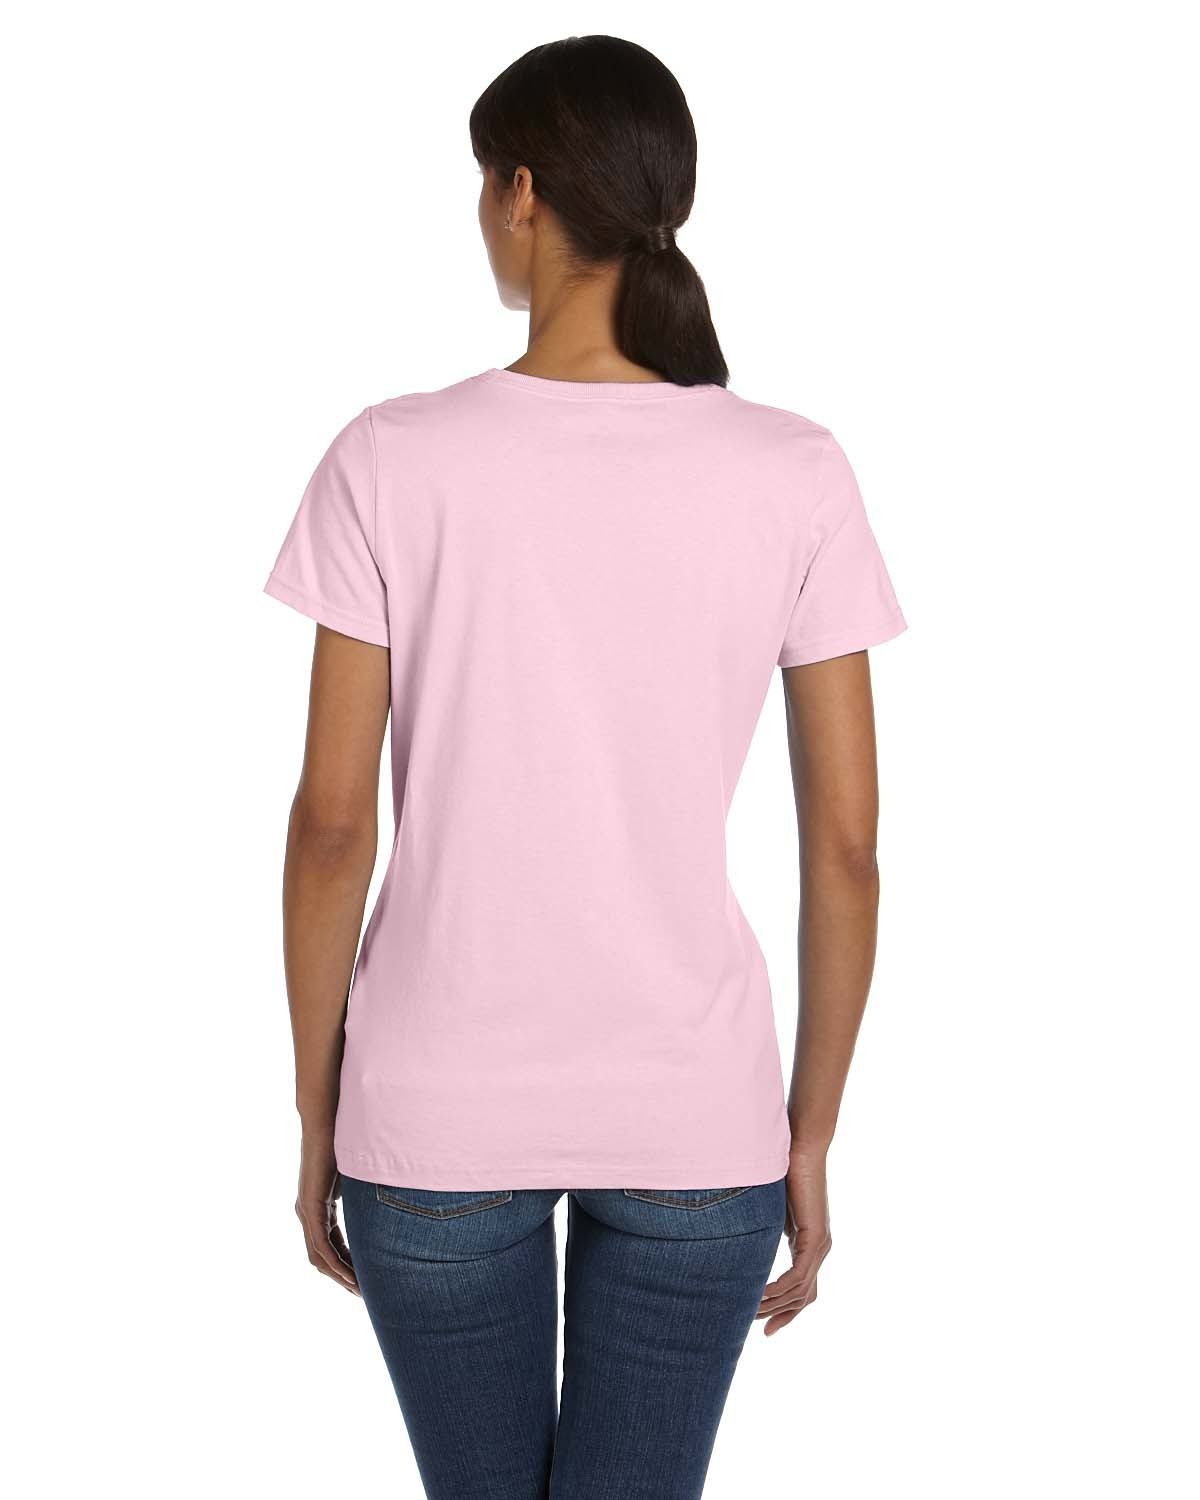 L3930R Fruit of the Loom CLASSIC PINK